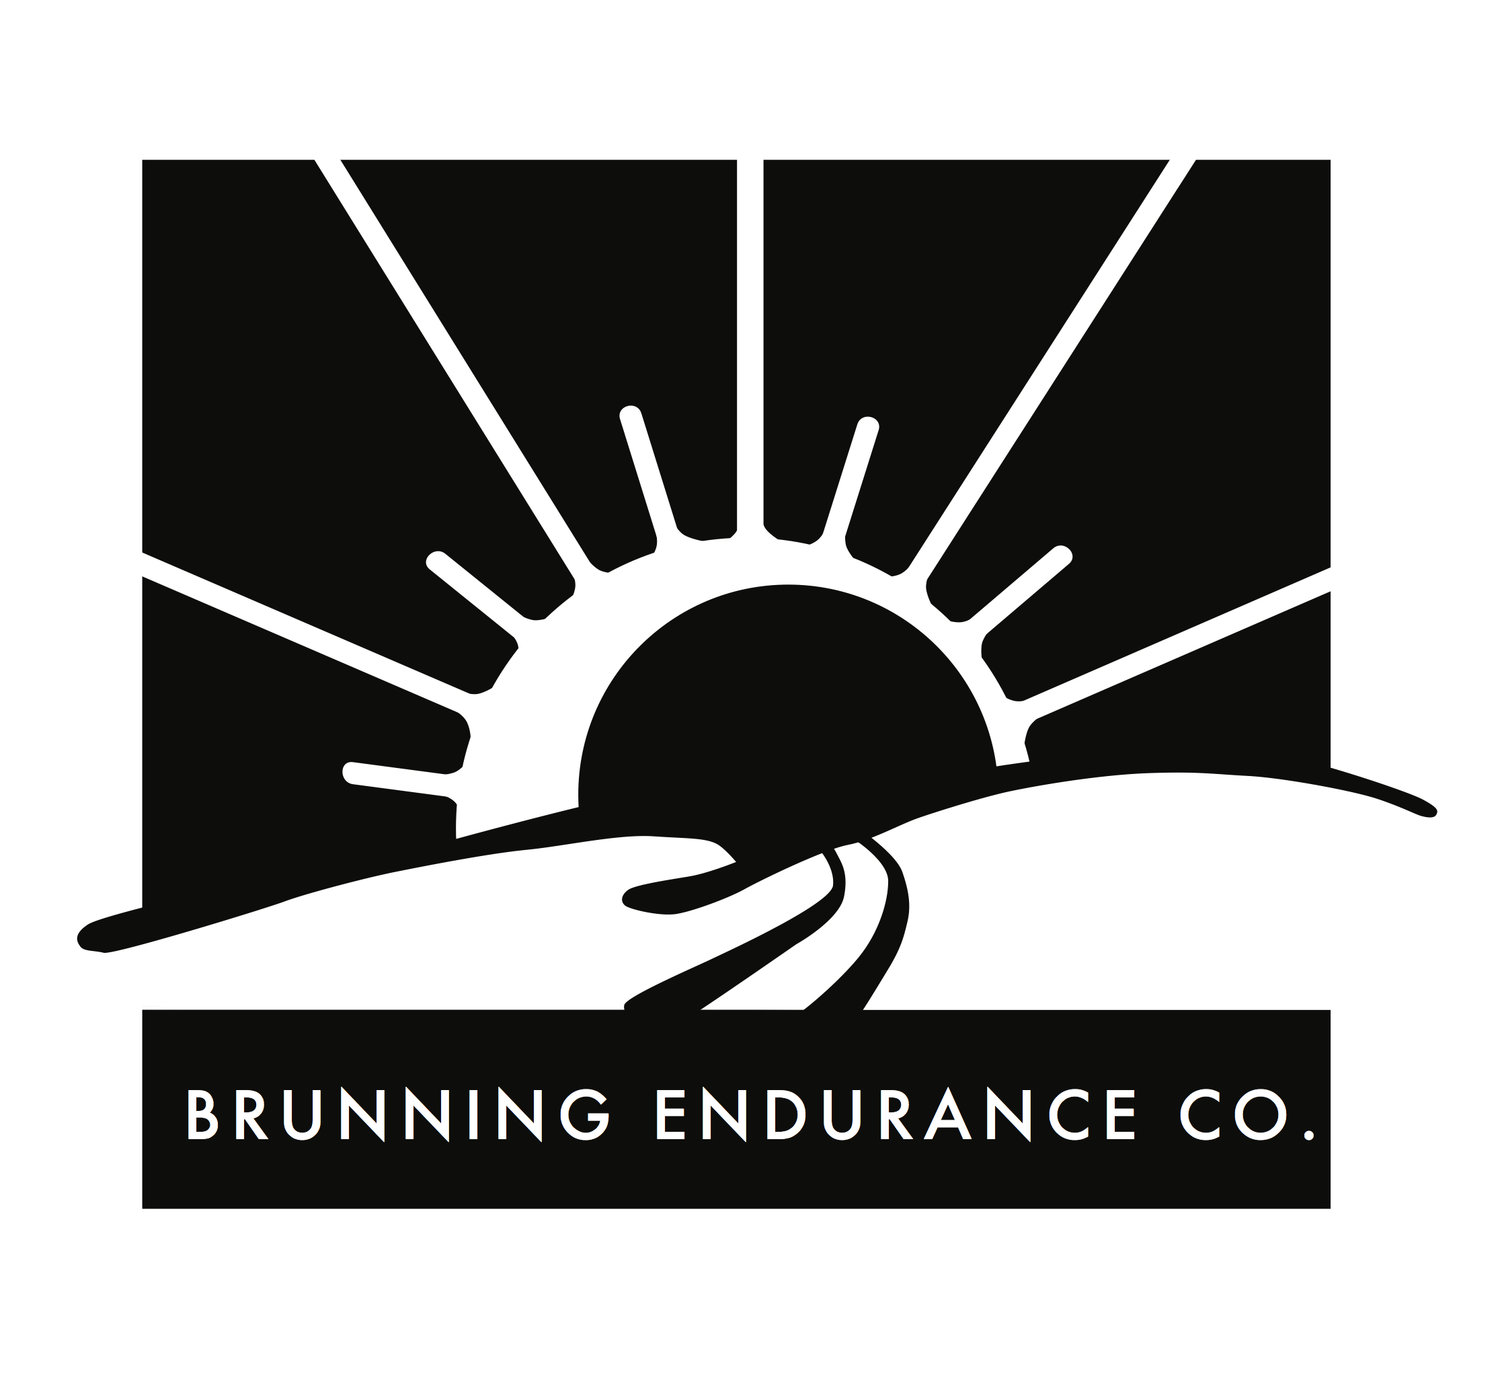 Brunning Endurance Co